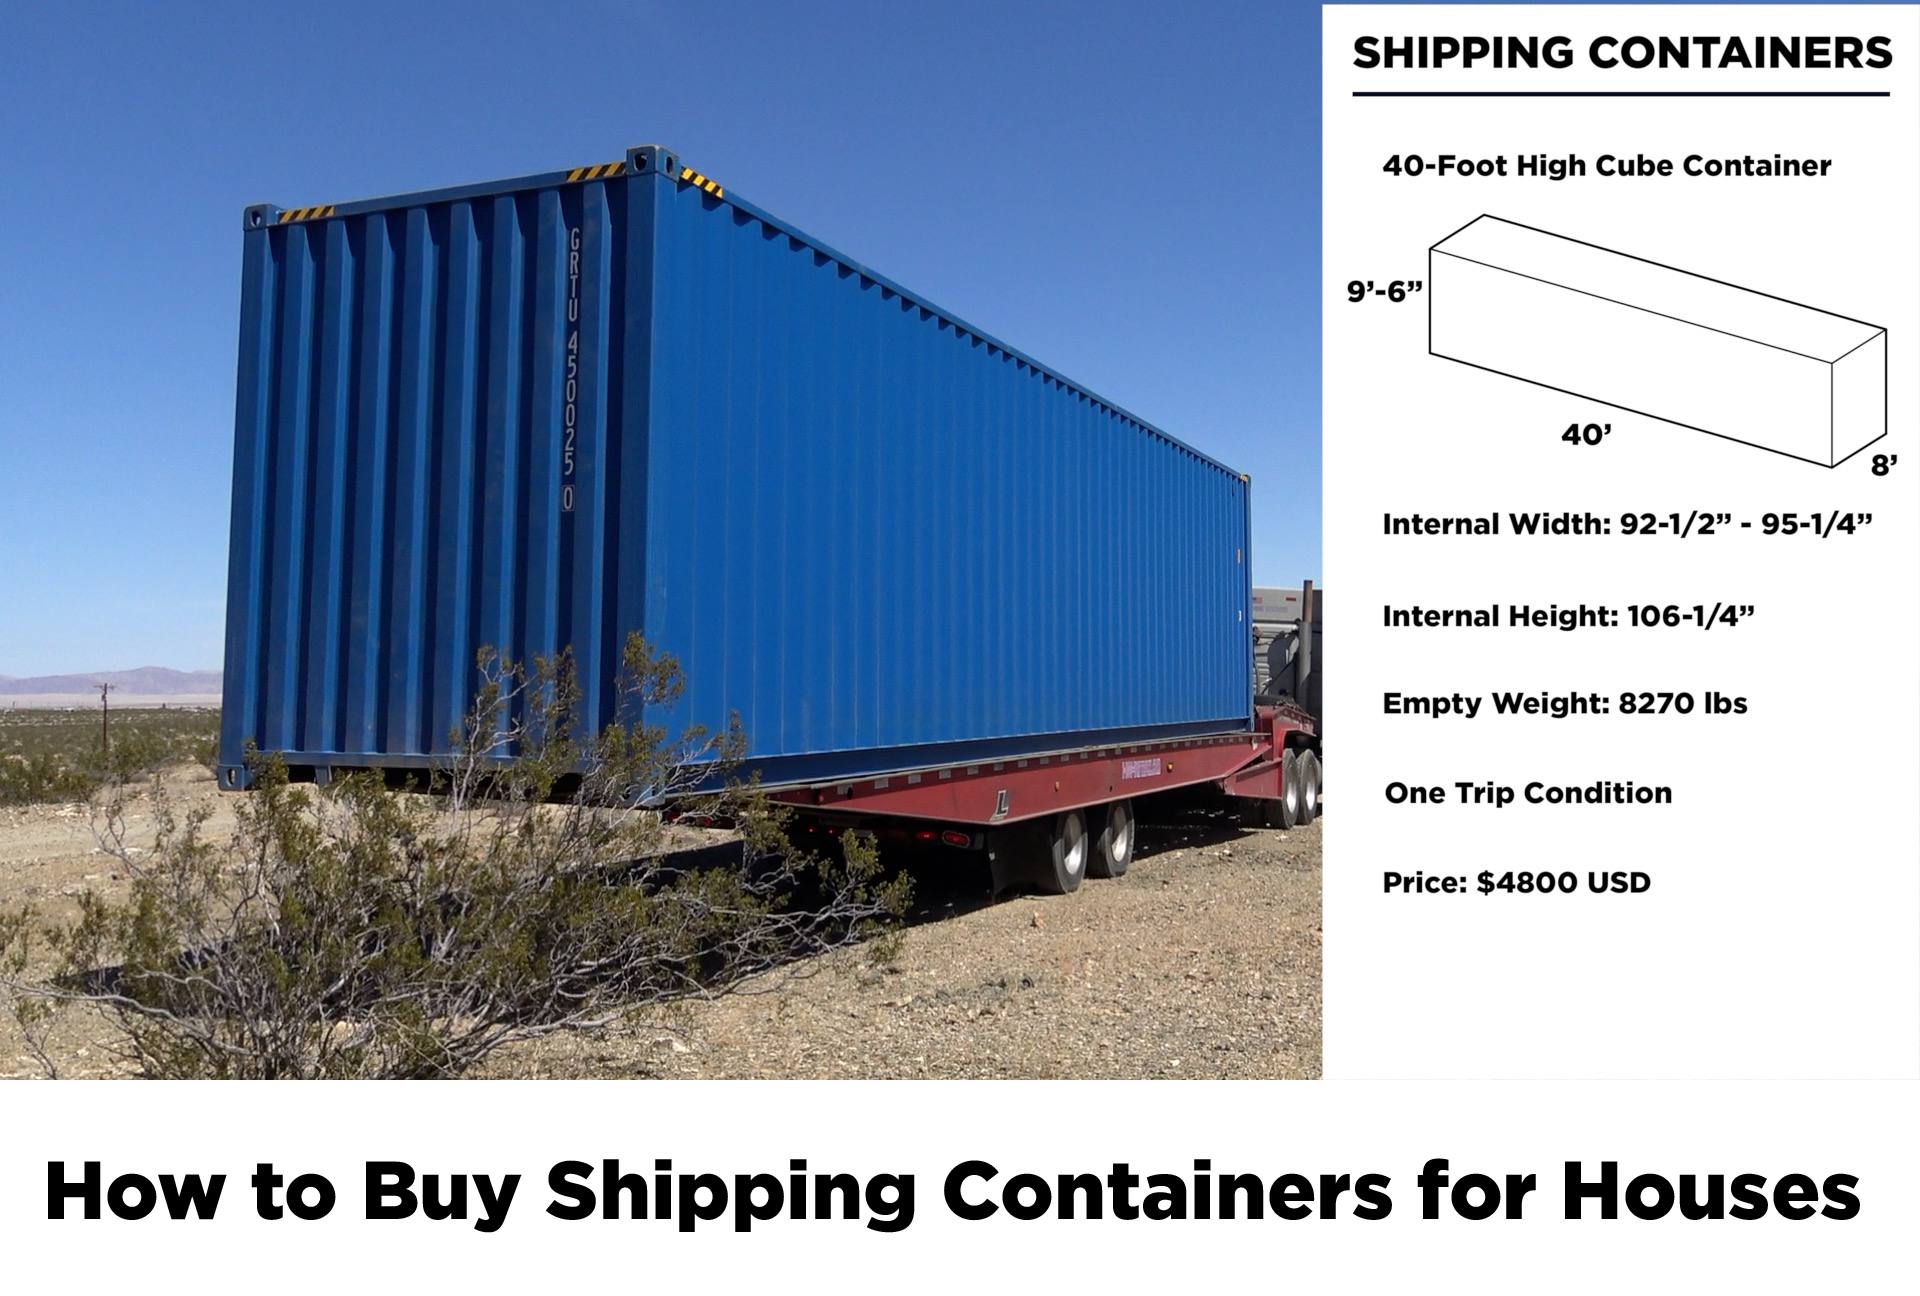 I bought two 40-foot High Cube Containers and one 20-foot high cube container from  Container Discounts